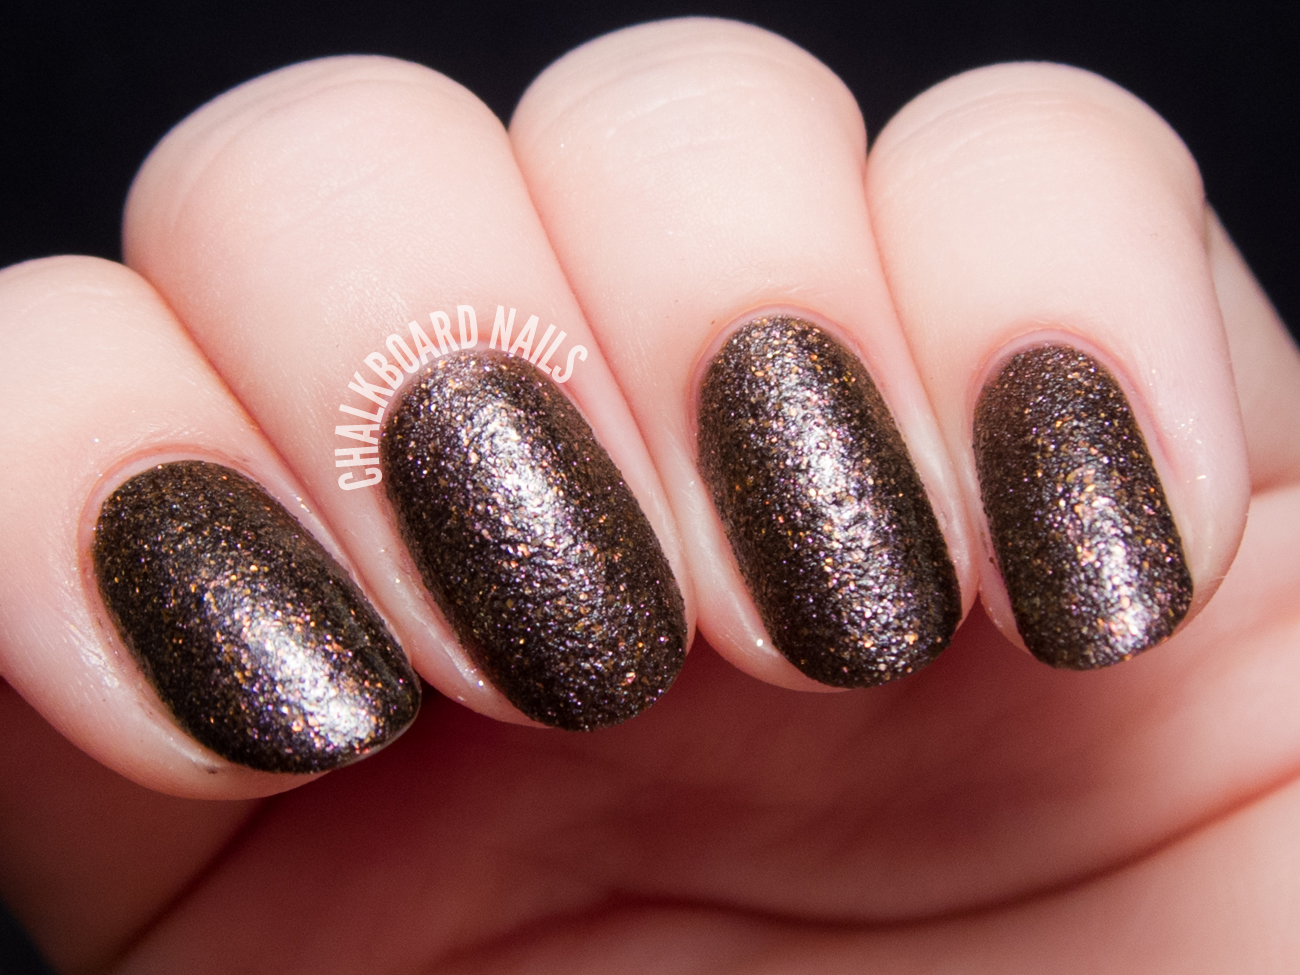 Color Club Fierce via @chalkboardnails